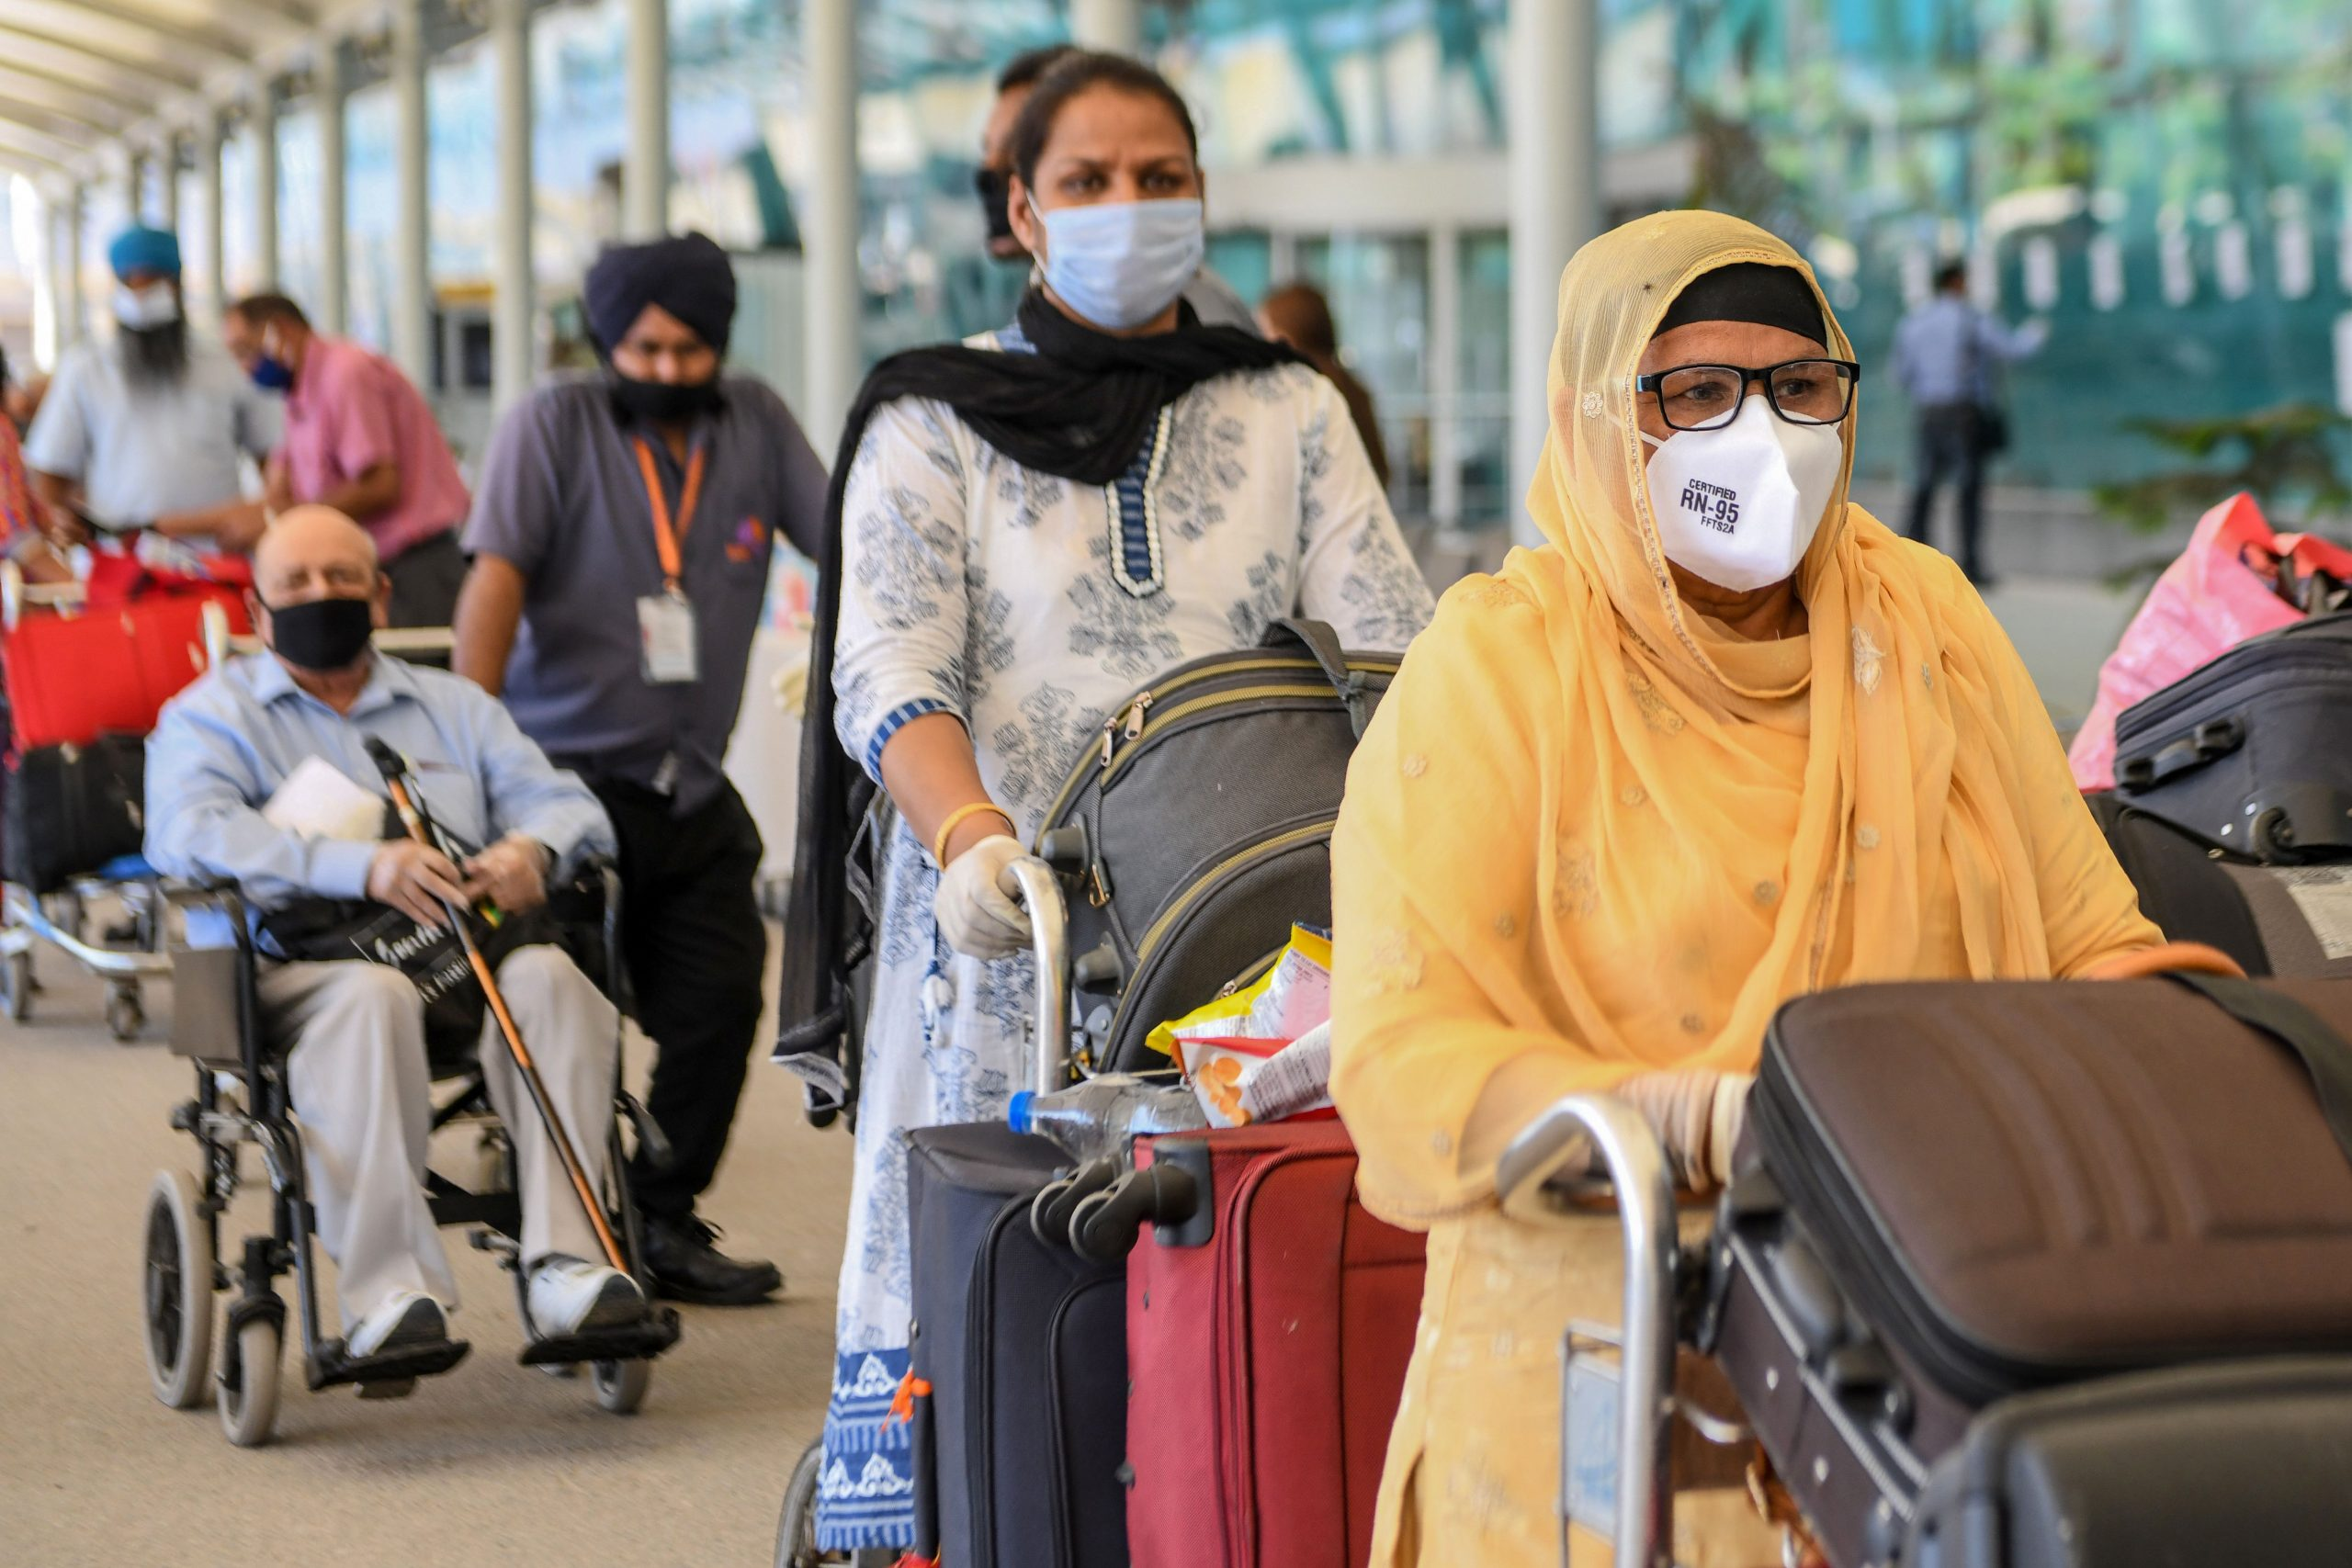 British nationals queue before checking-in for a special flight to London after the government eased a nationwide lockdown imposed as a preventive measure against the COVID-19 coronavirus, at Sri Guru Ram Dass Jee International Airport on the outskirts of Amritsar on May 15, 2020. (Photo by NARINDER NANU / AFP) (Photo by NARINDER NANU/AFP via Getty Images)